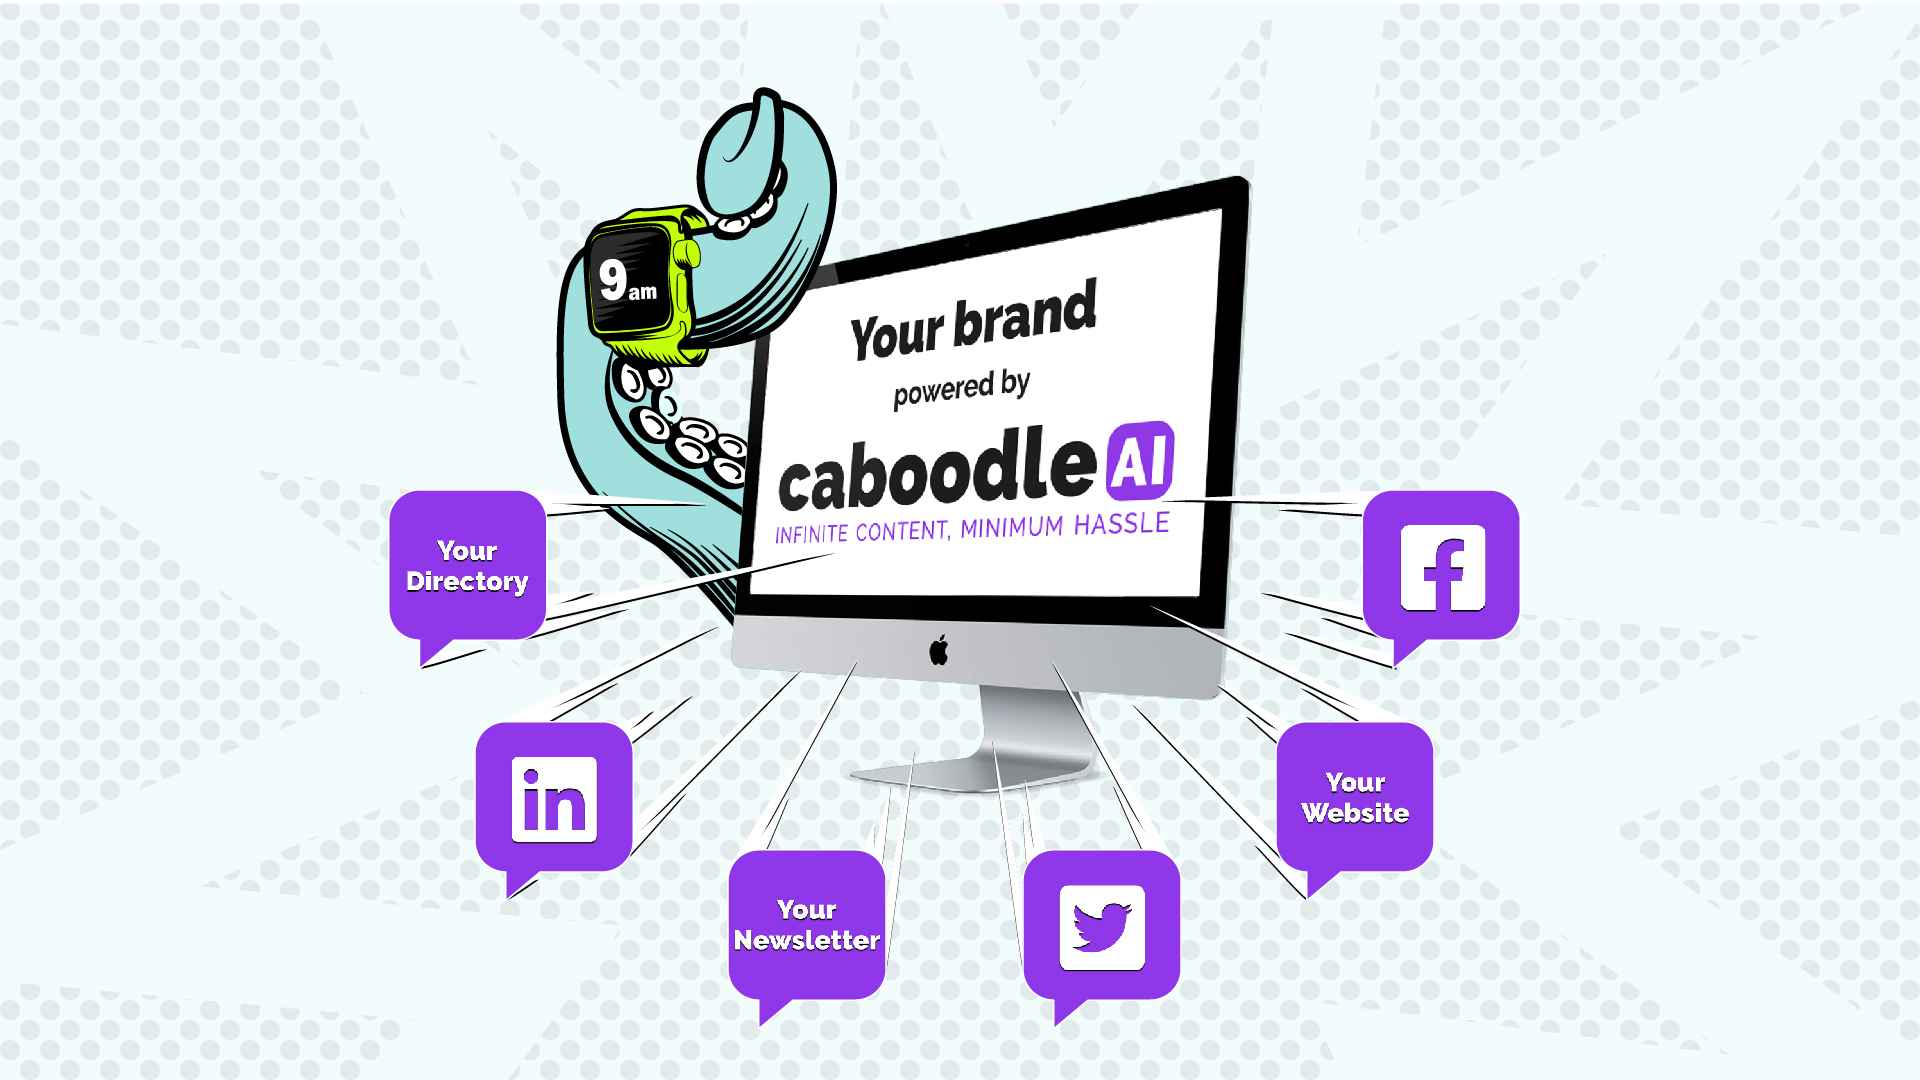 Caboodle AI service for creating content in all social media